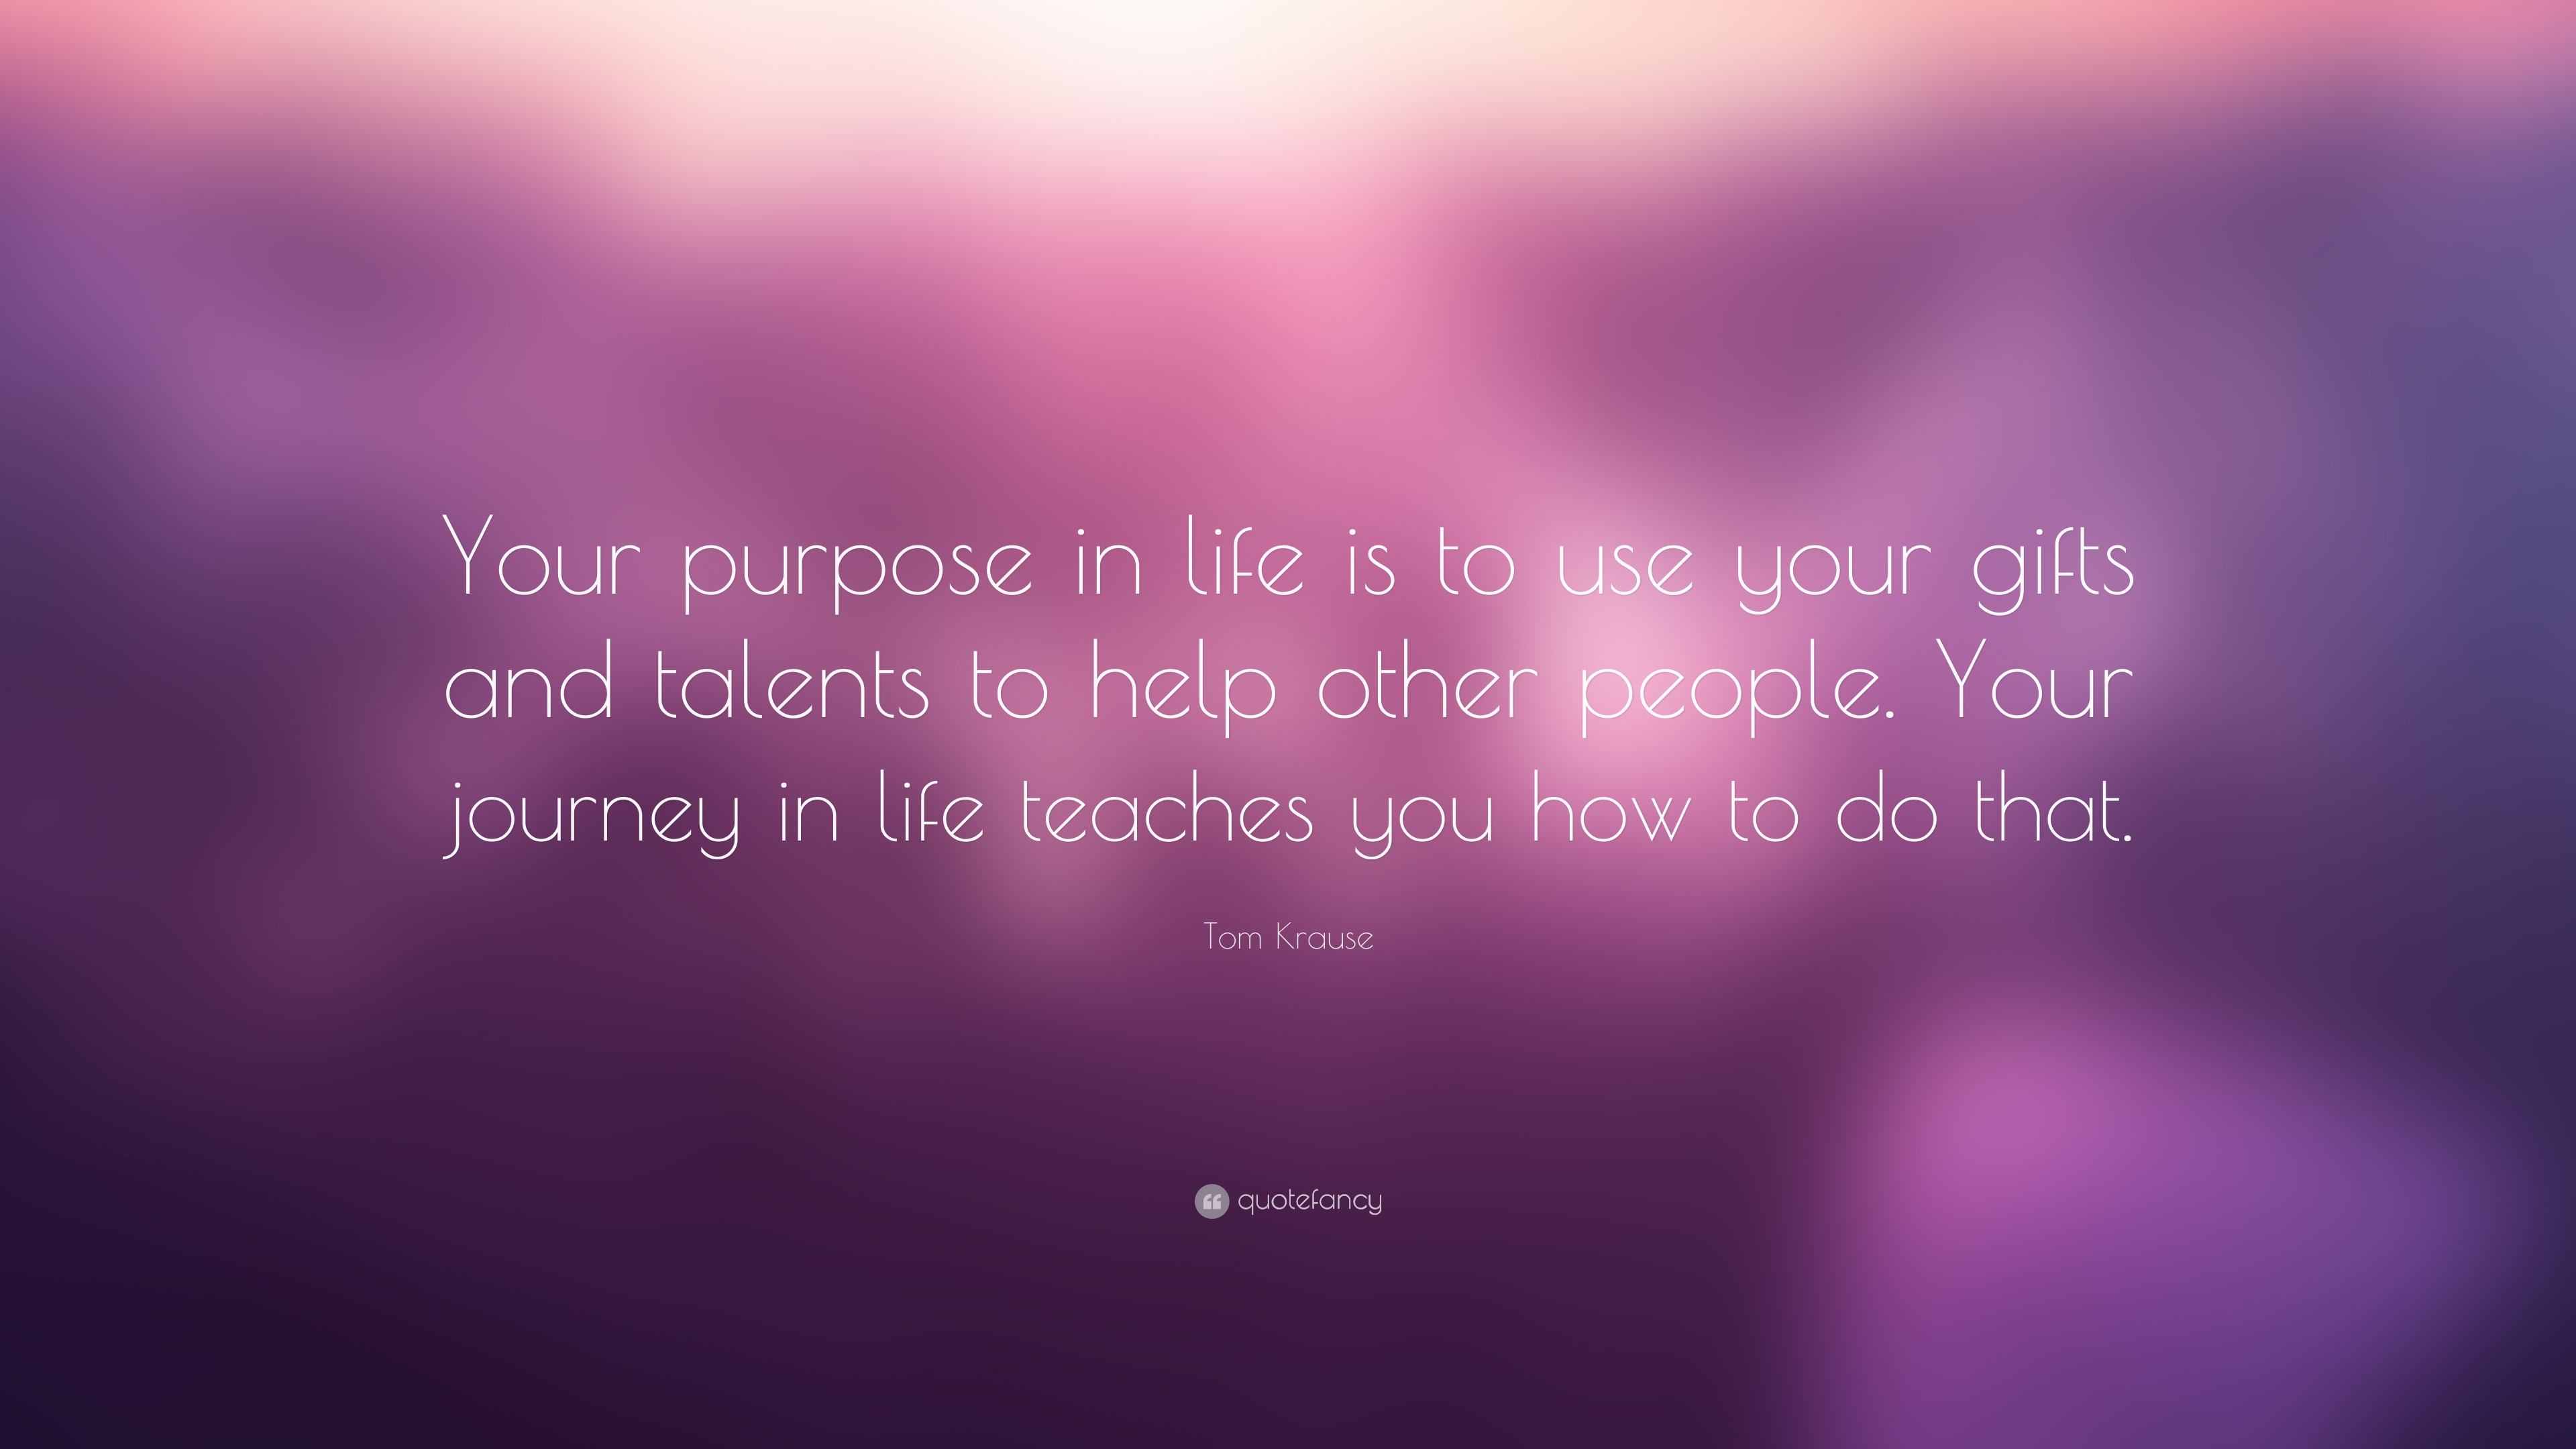 Persistence Quotes Wallpapers Tom Krause Quote Your Purpose In Life Is To Use Your